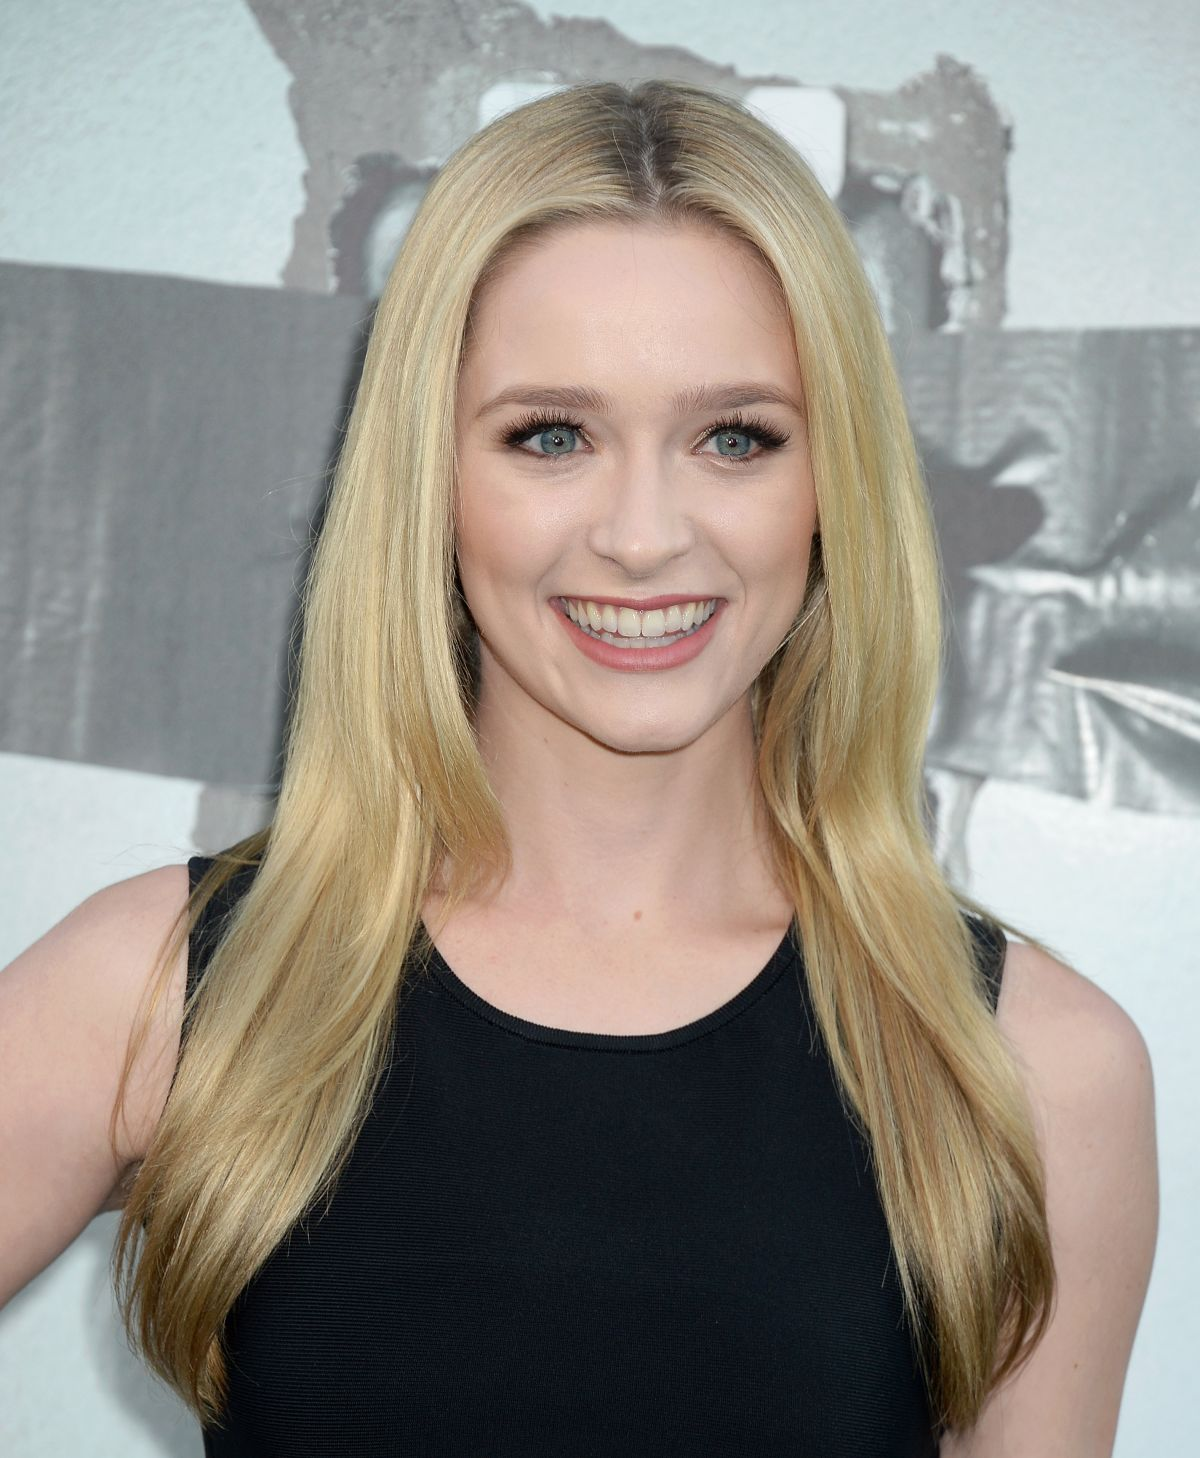 Greer Grammer At 'Lights Out' Premiere in Hollywood ...